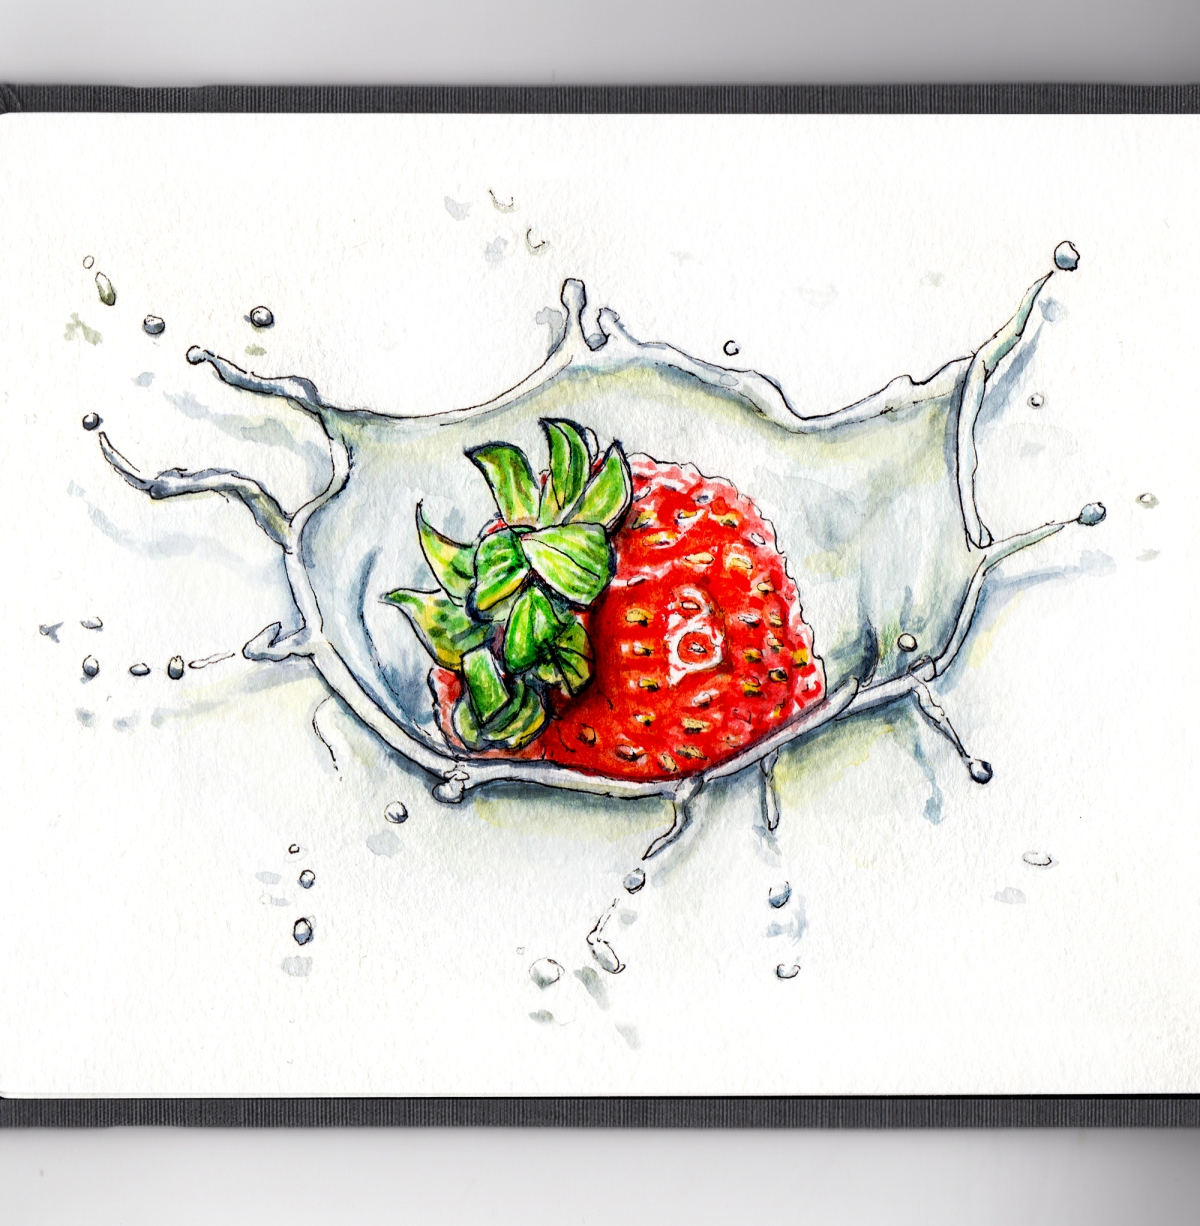 Day 15 - Strawberries and Cream Splash